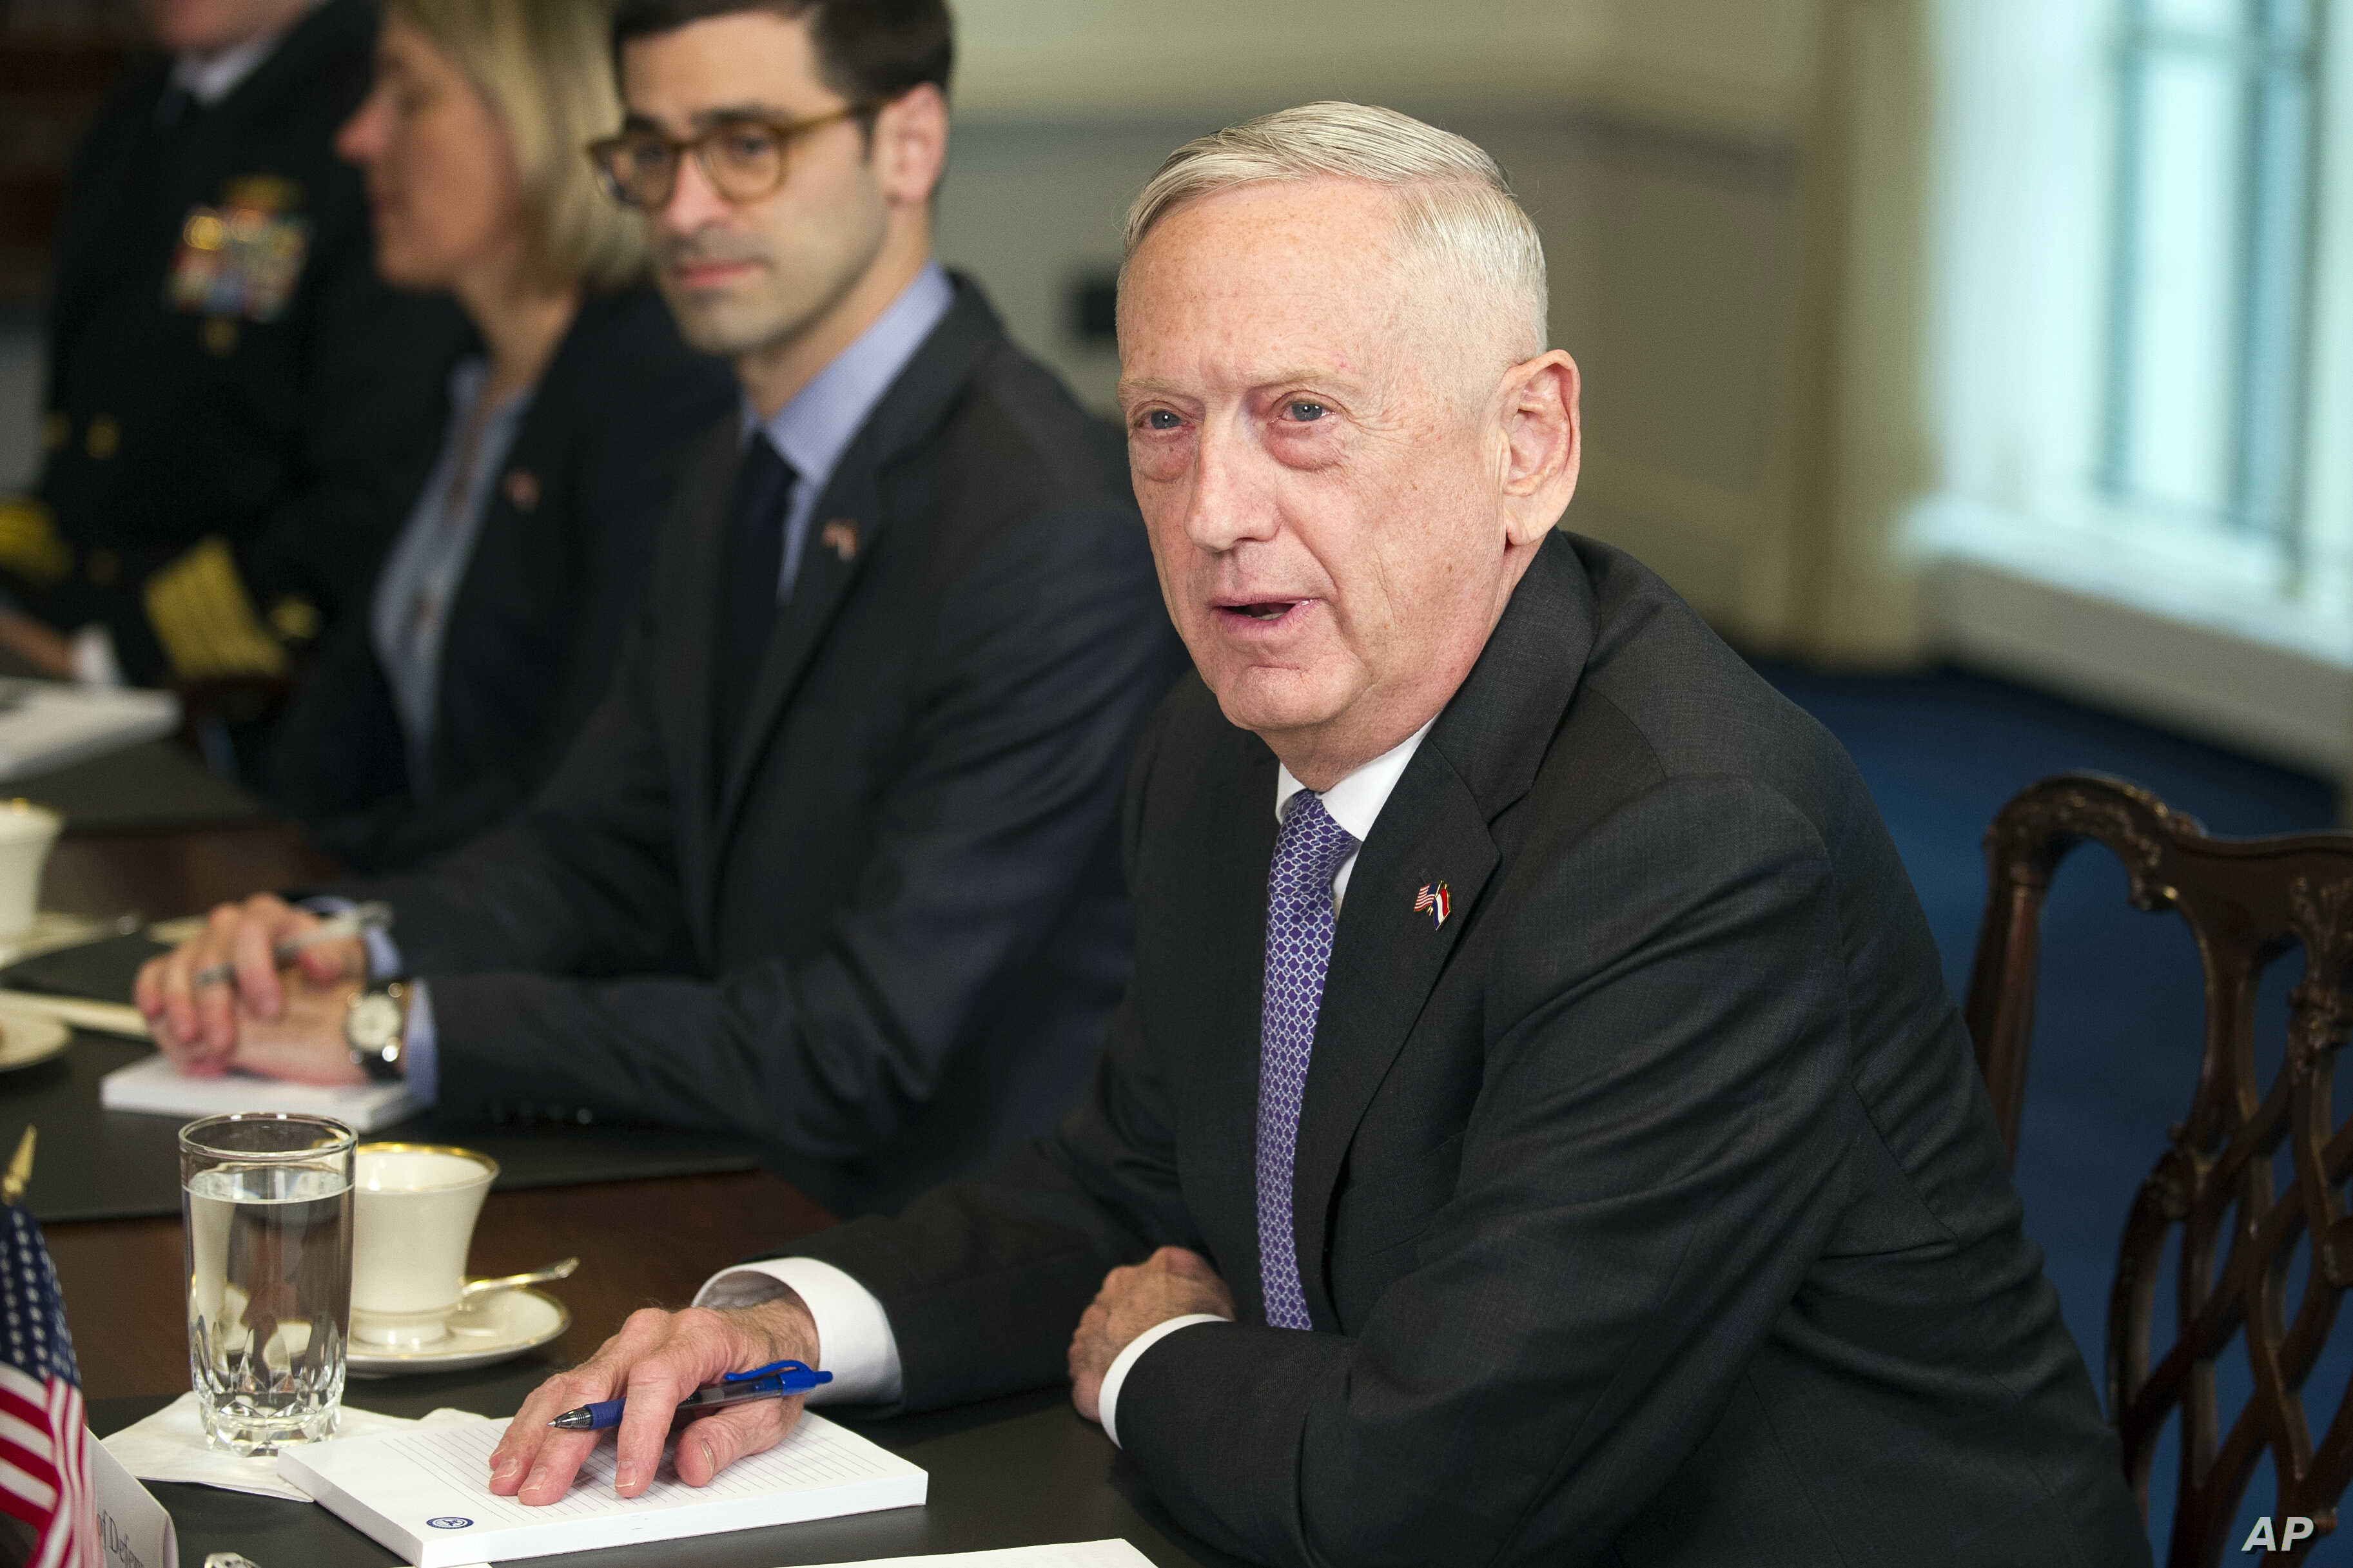 Defense Secretary Jim Mattis responds to reporter's question about military action in Syria during a meeting with Netherlands Minister of Defense Ank Bijleveld at the Pentagon in Washington, April 11, 2018.